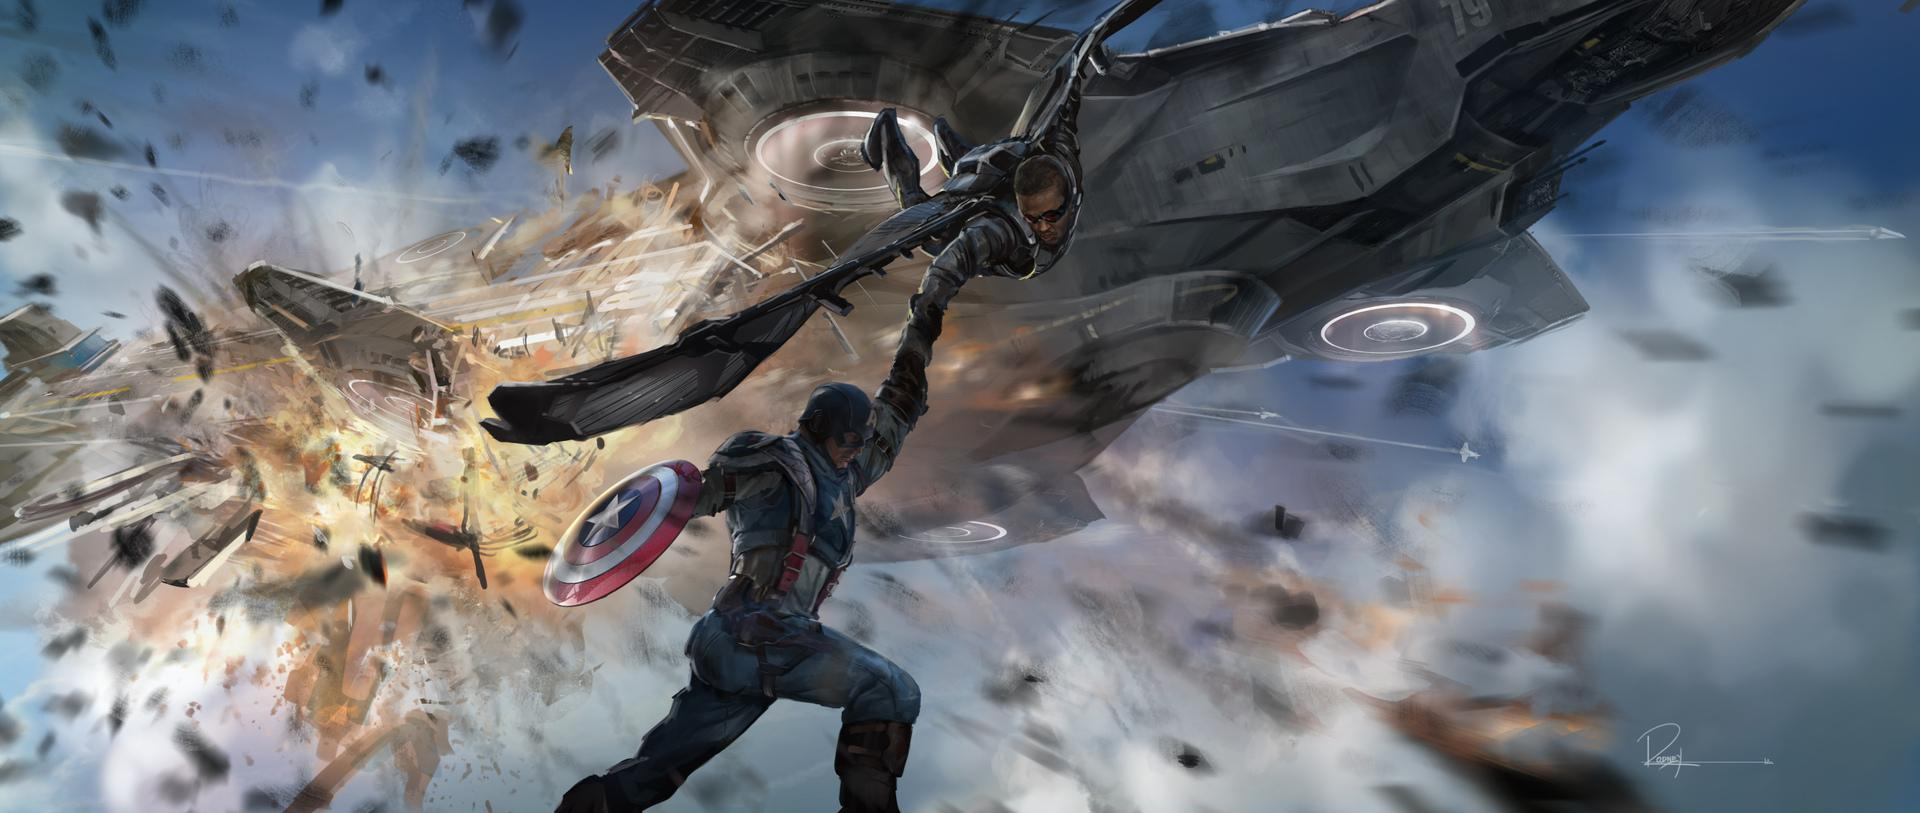 Captain America: The Winter Soldier' Concept Art – /Film